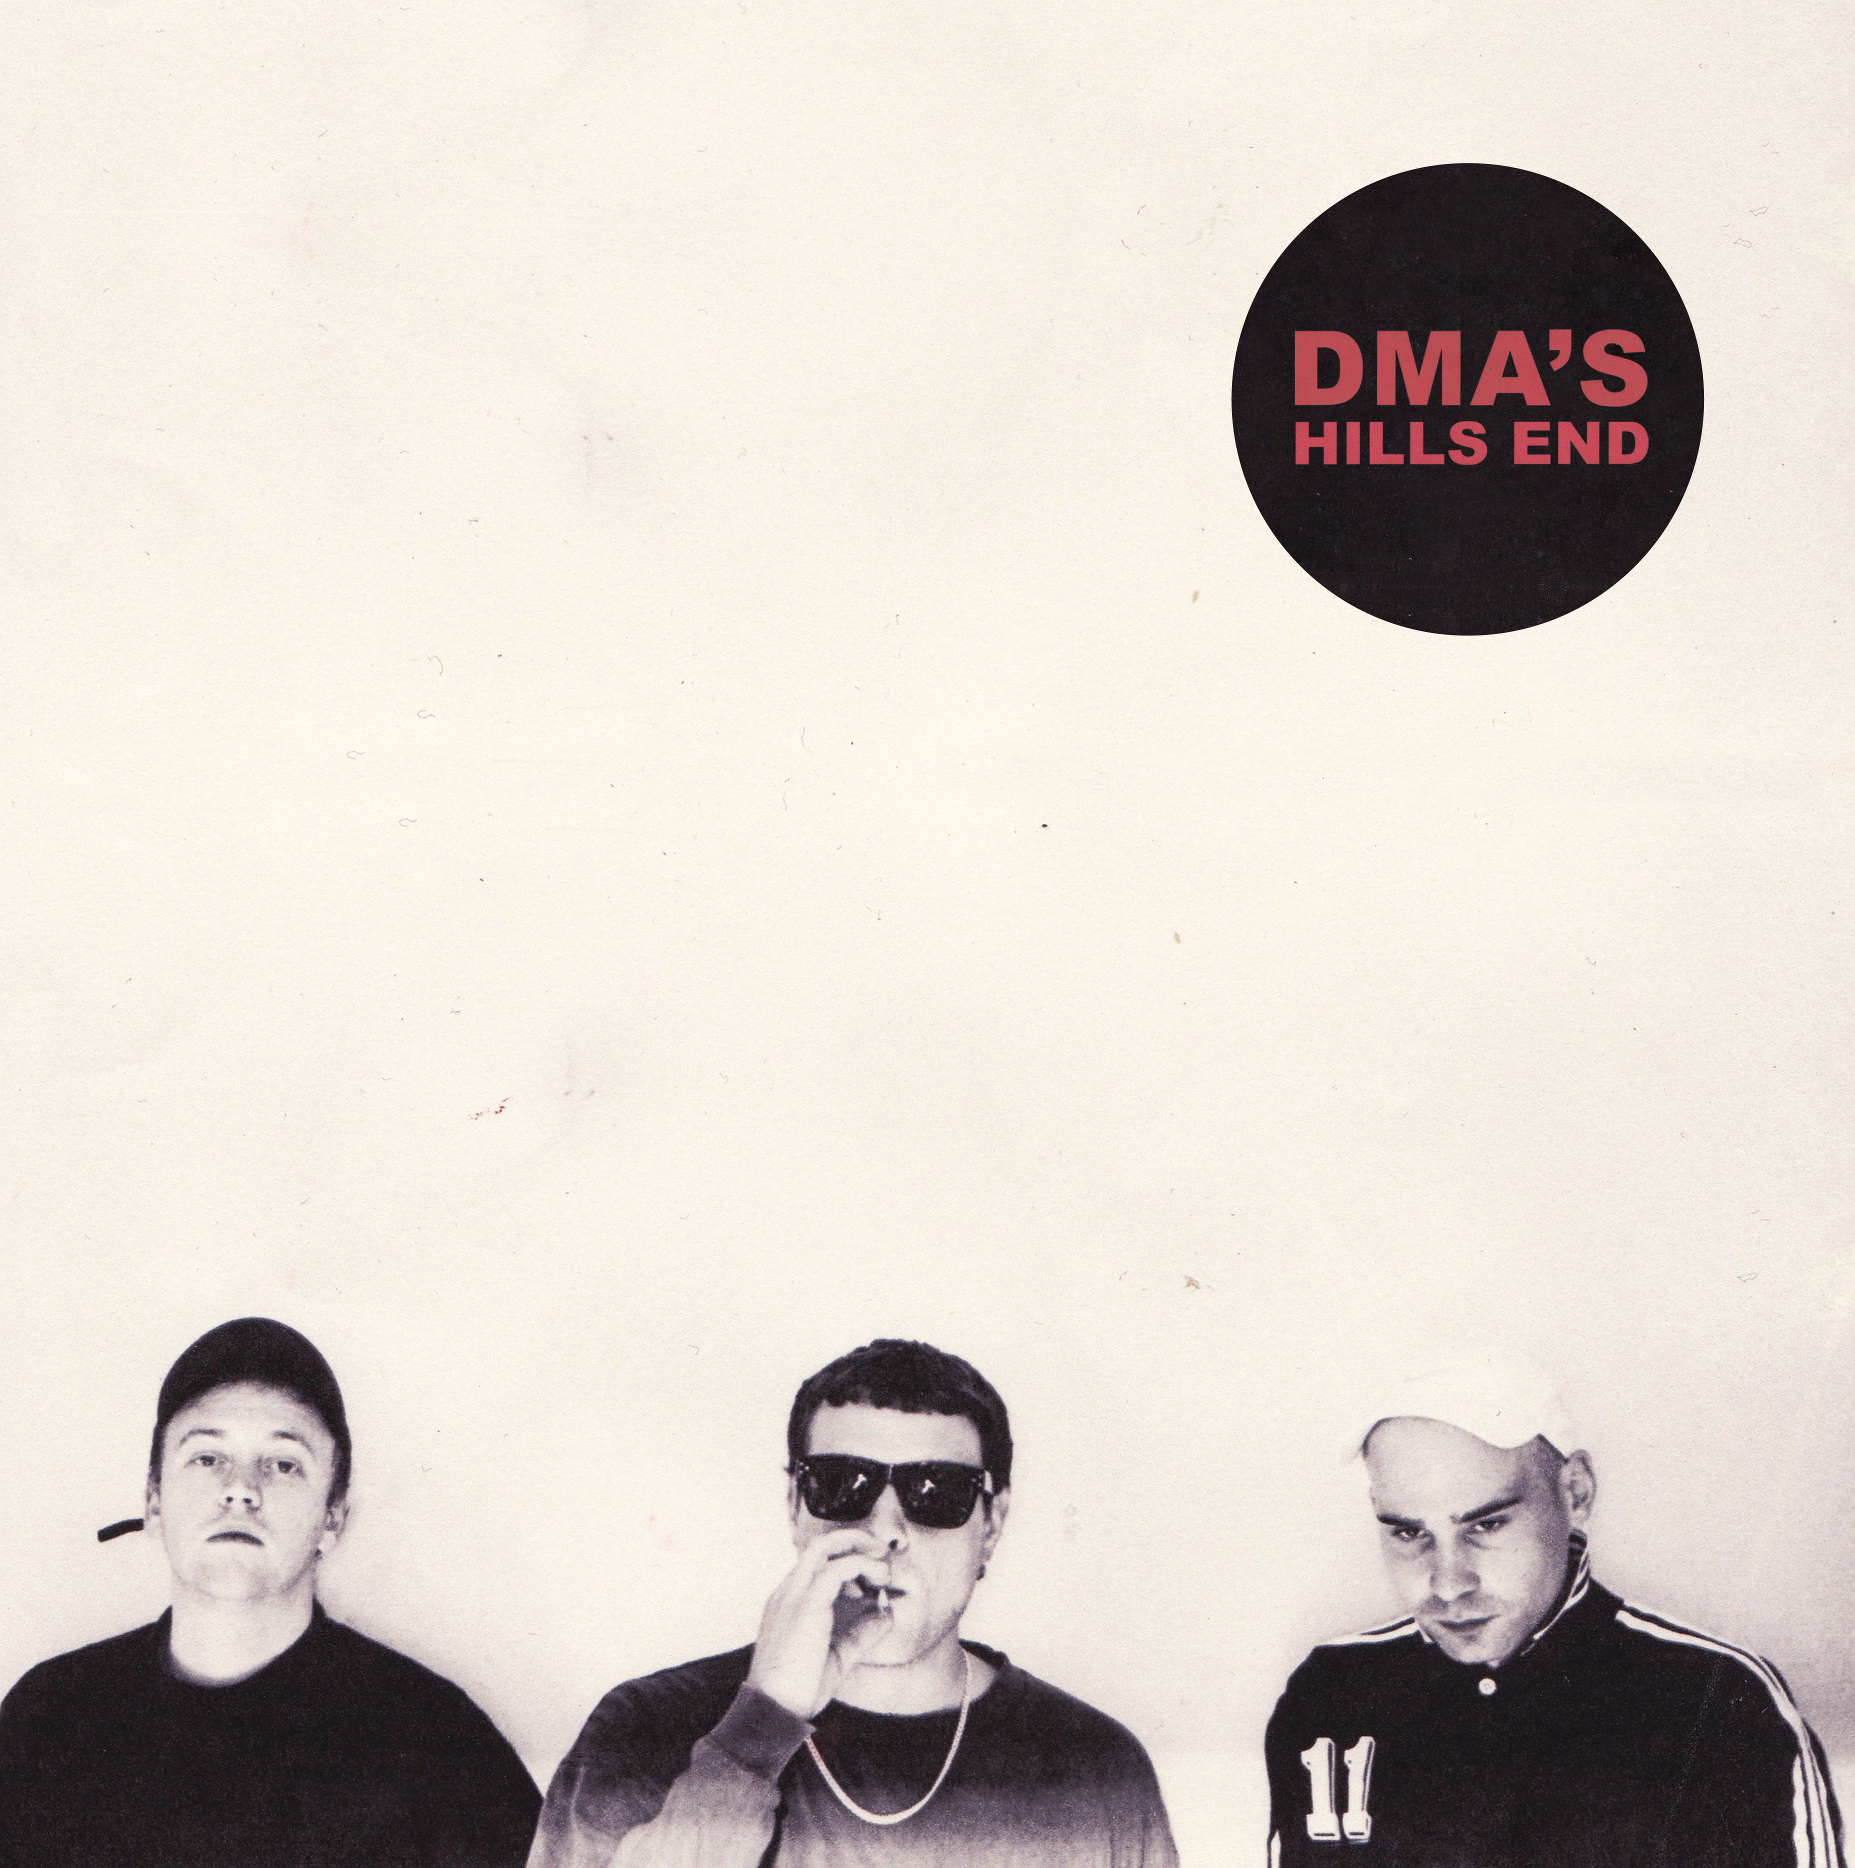 DMA'S Hills End - SMALL